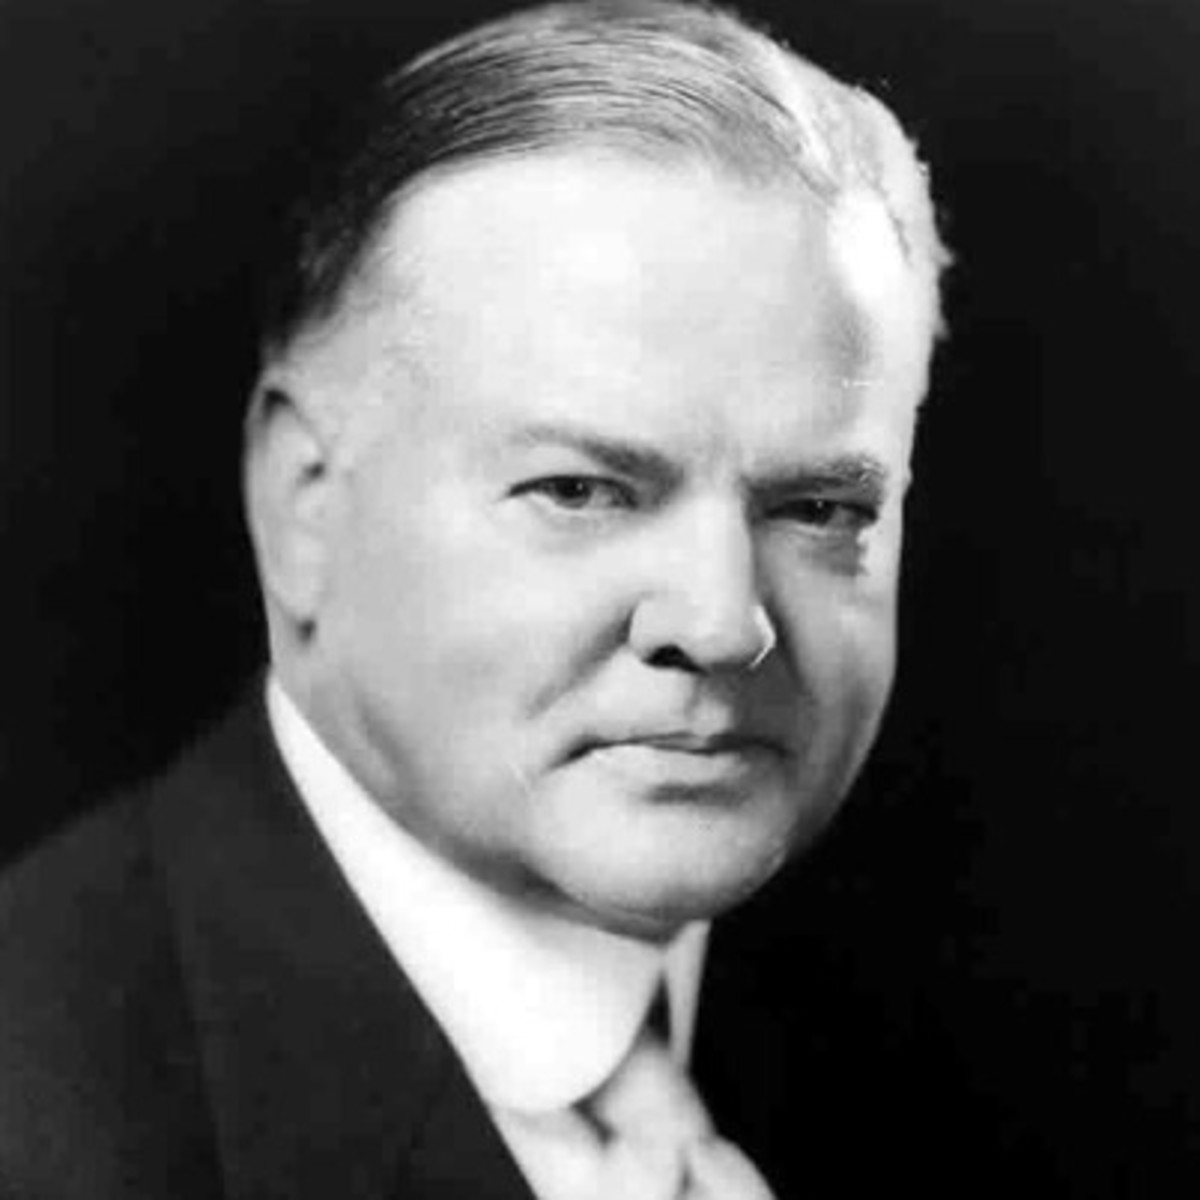 Herbert Hoover - Facts, Presidency & Great Depression - Biography